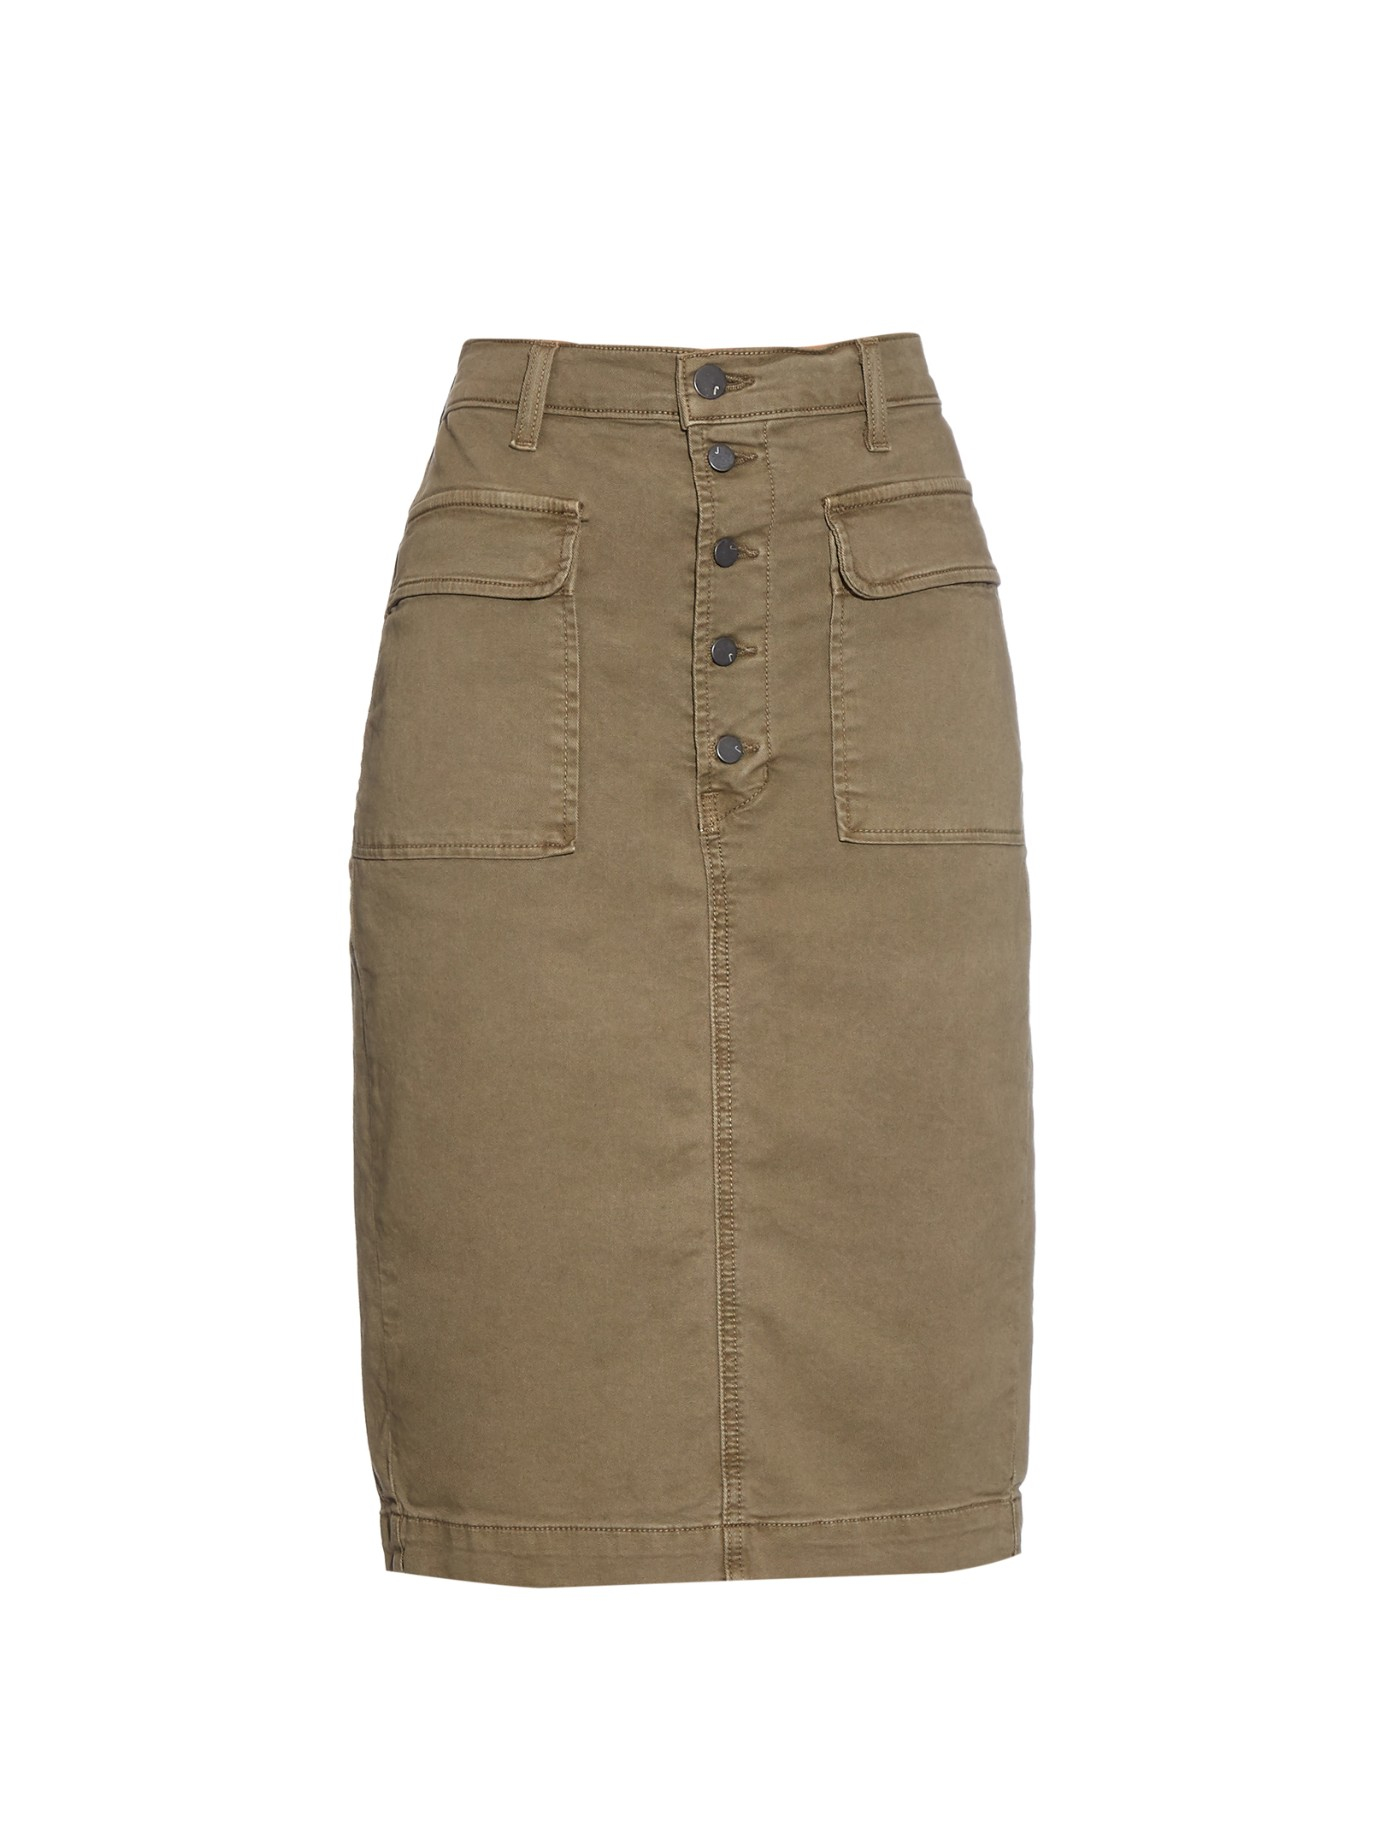 Pencil Skirt Khaki - Dress Ala